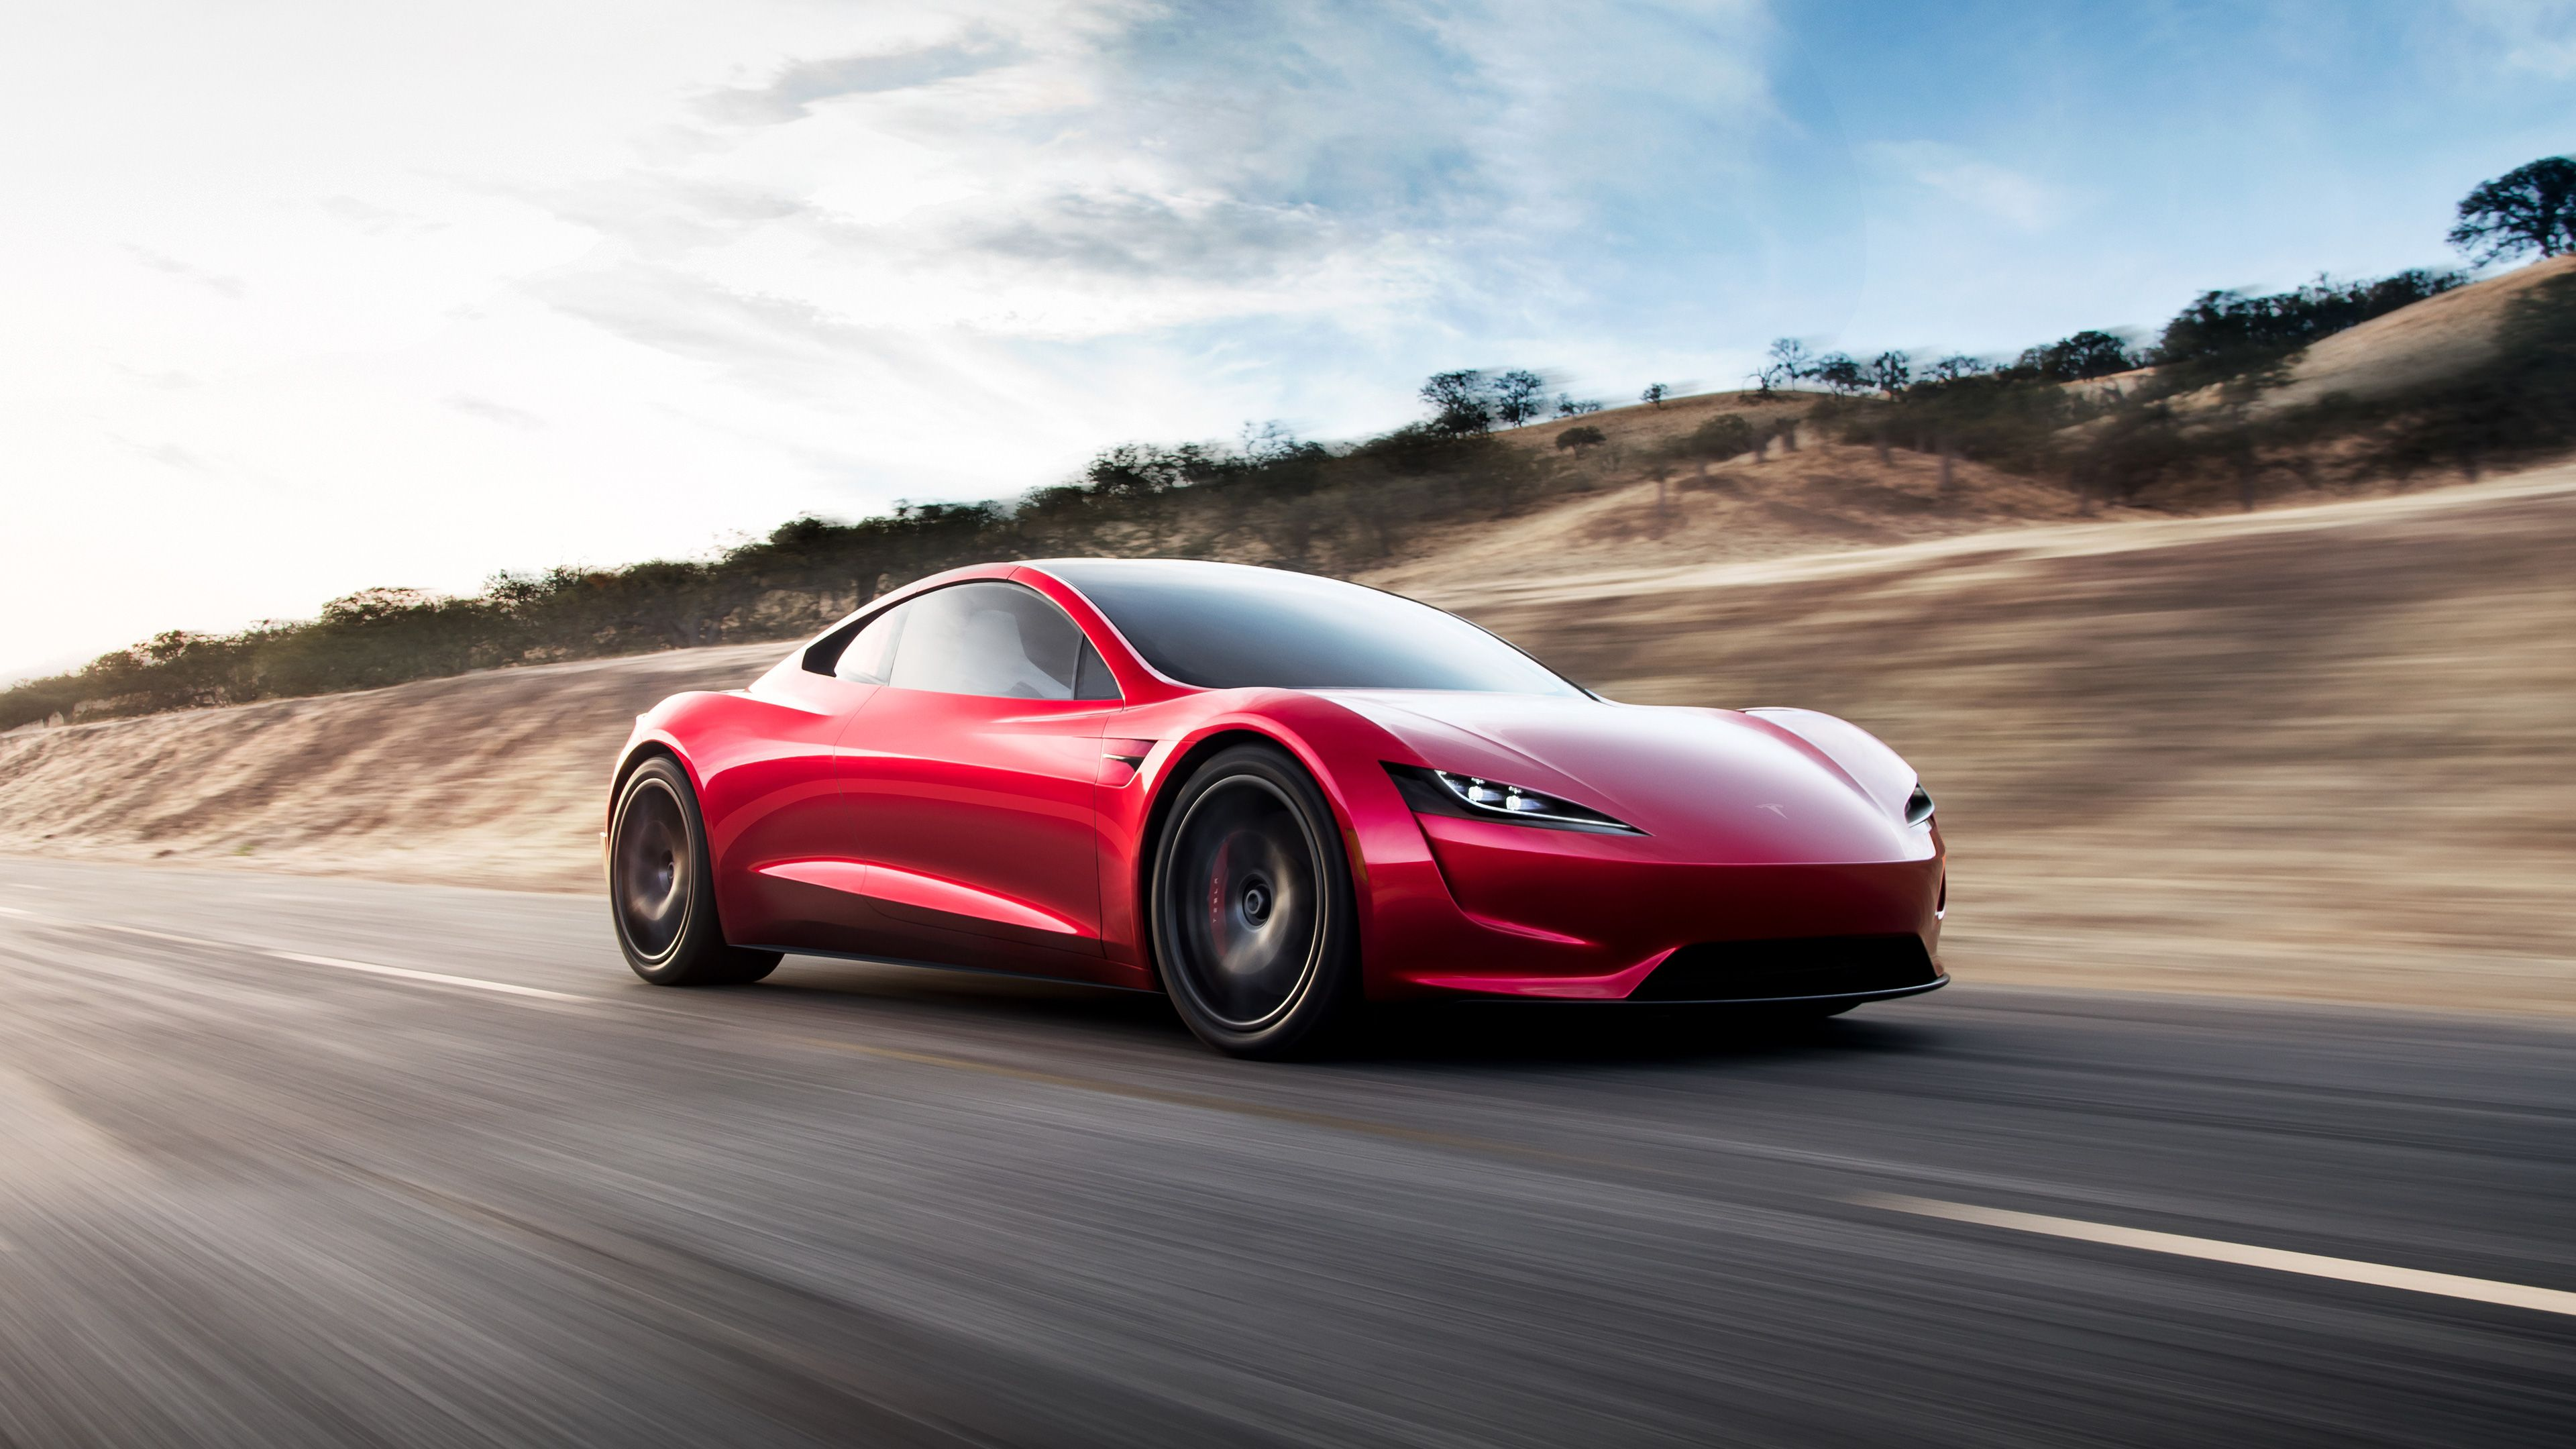 Tesla Roadster 4k Tesla Wallpapers Tesla Roadster Wallpapers Hd Wallpapers Electric Cars Wallpapers 4k Wallpapers Tesla Roadster Tesla Car Tesla Sports Car